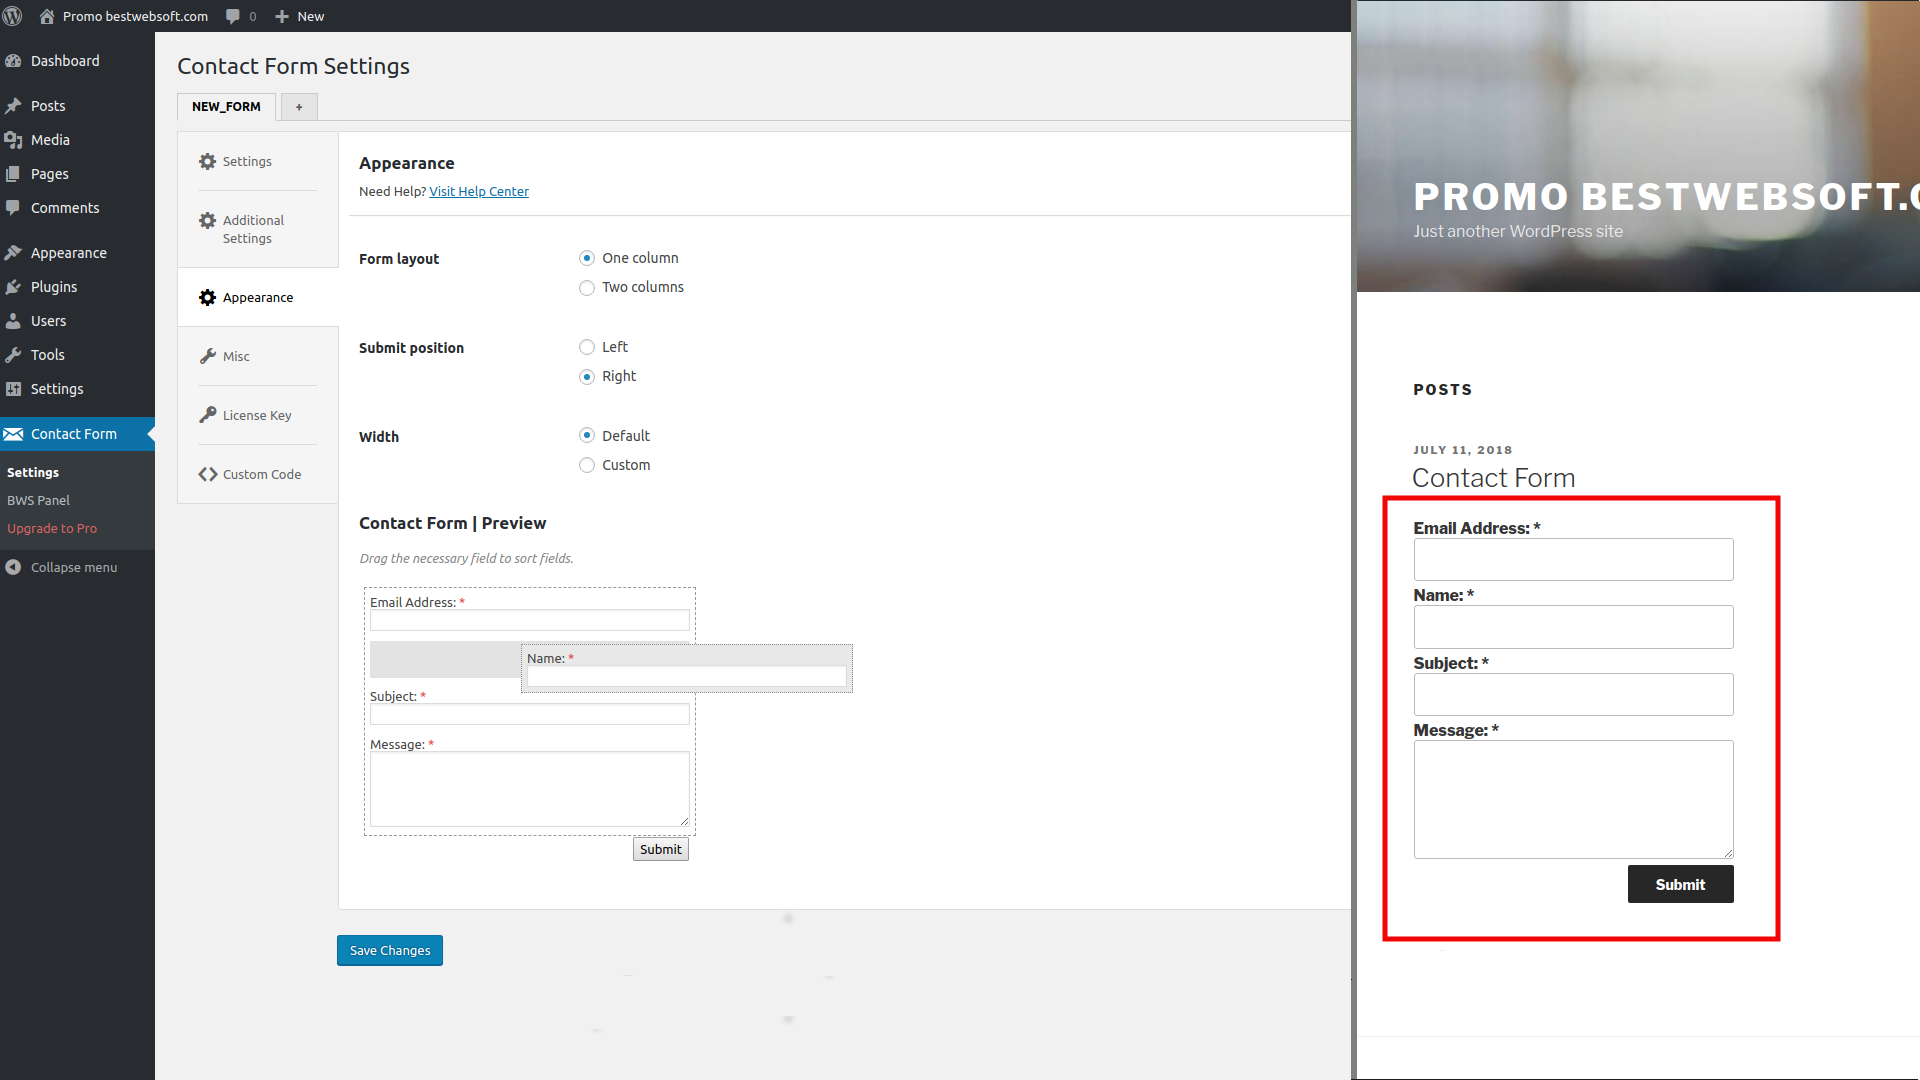 Re-order contact form fields using drag & drop interface.